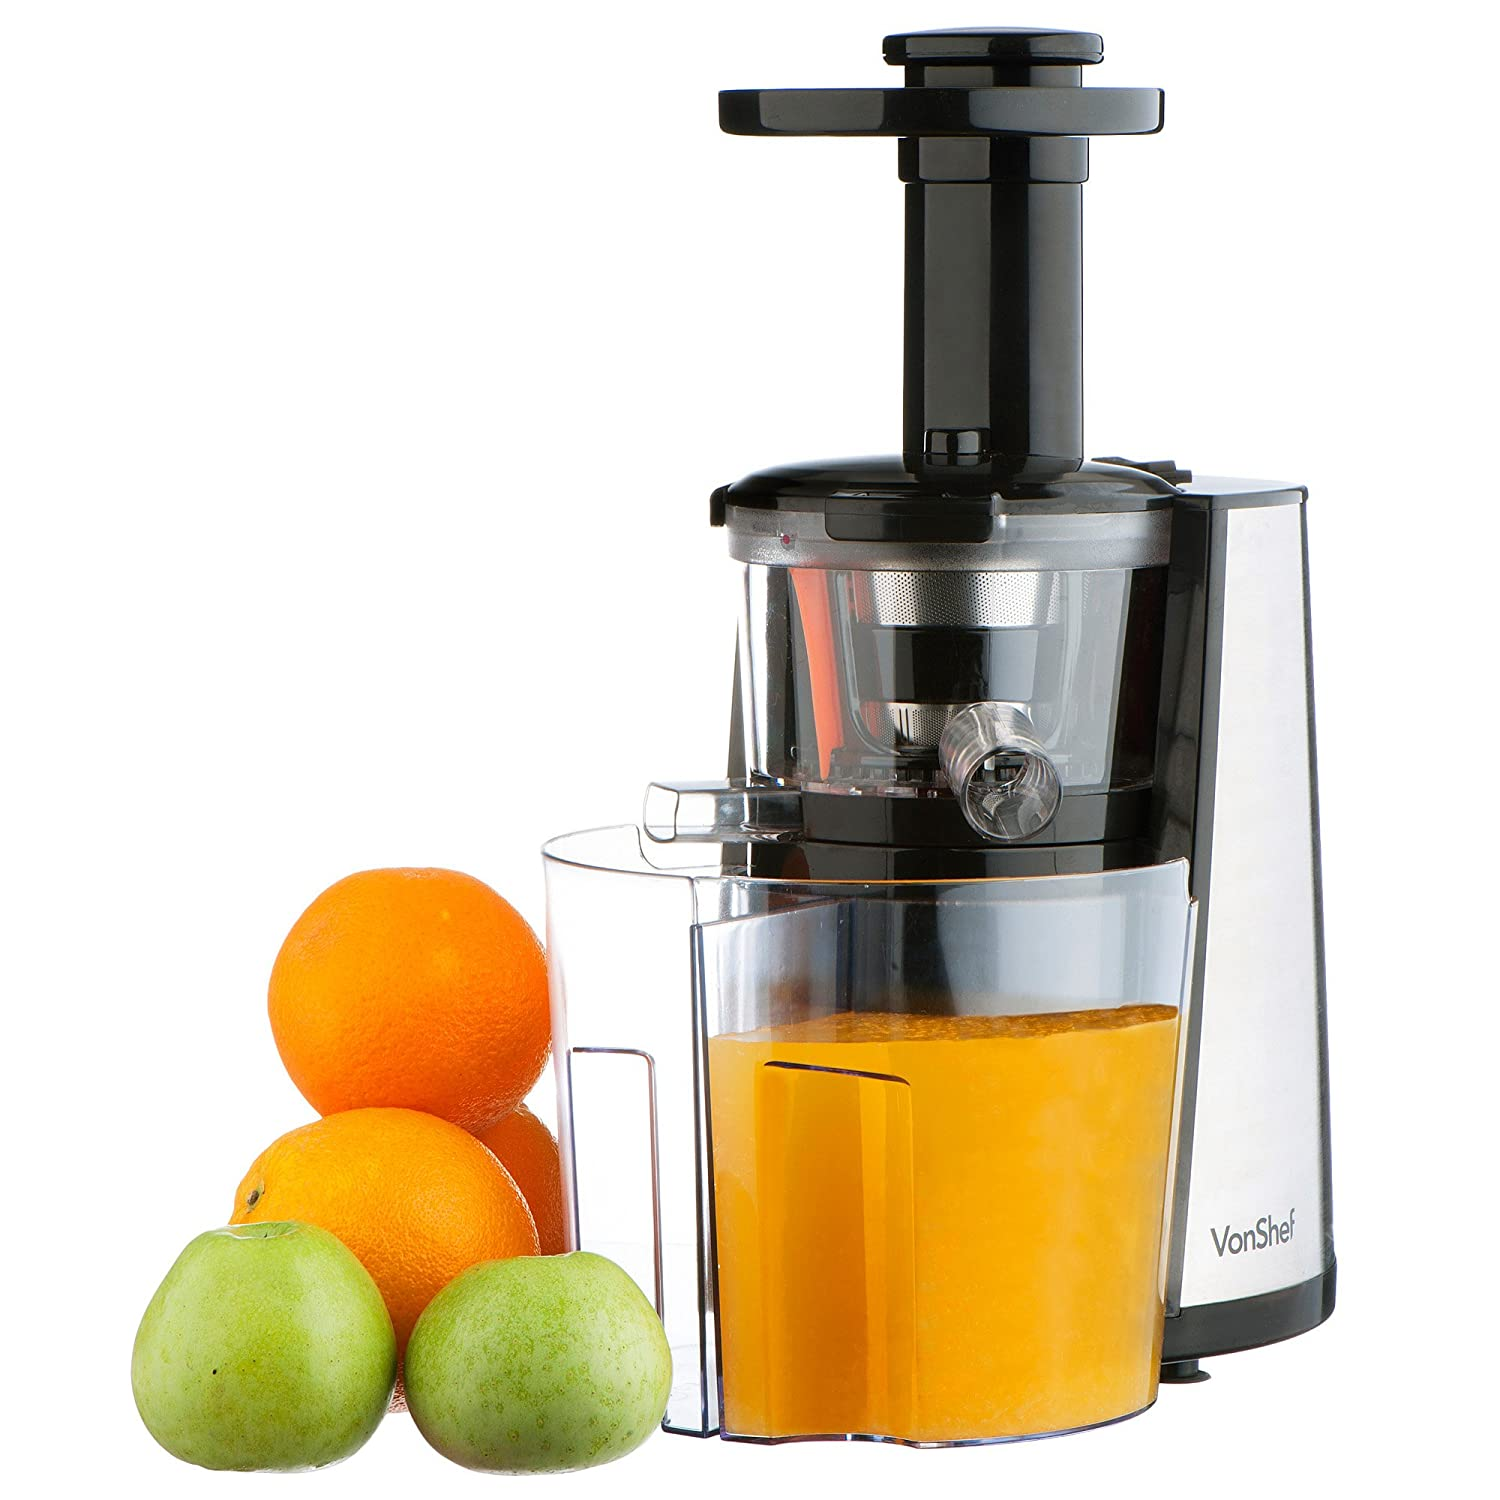 Best Rated Masticating Juicer : Best Juicers - Comparisons & Reviews of Top Rated Juicers Safety.com